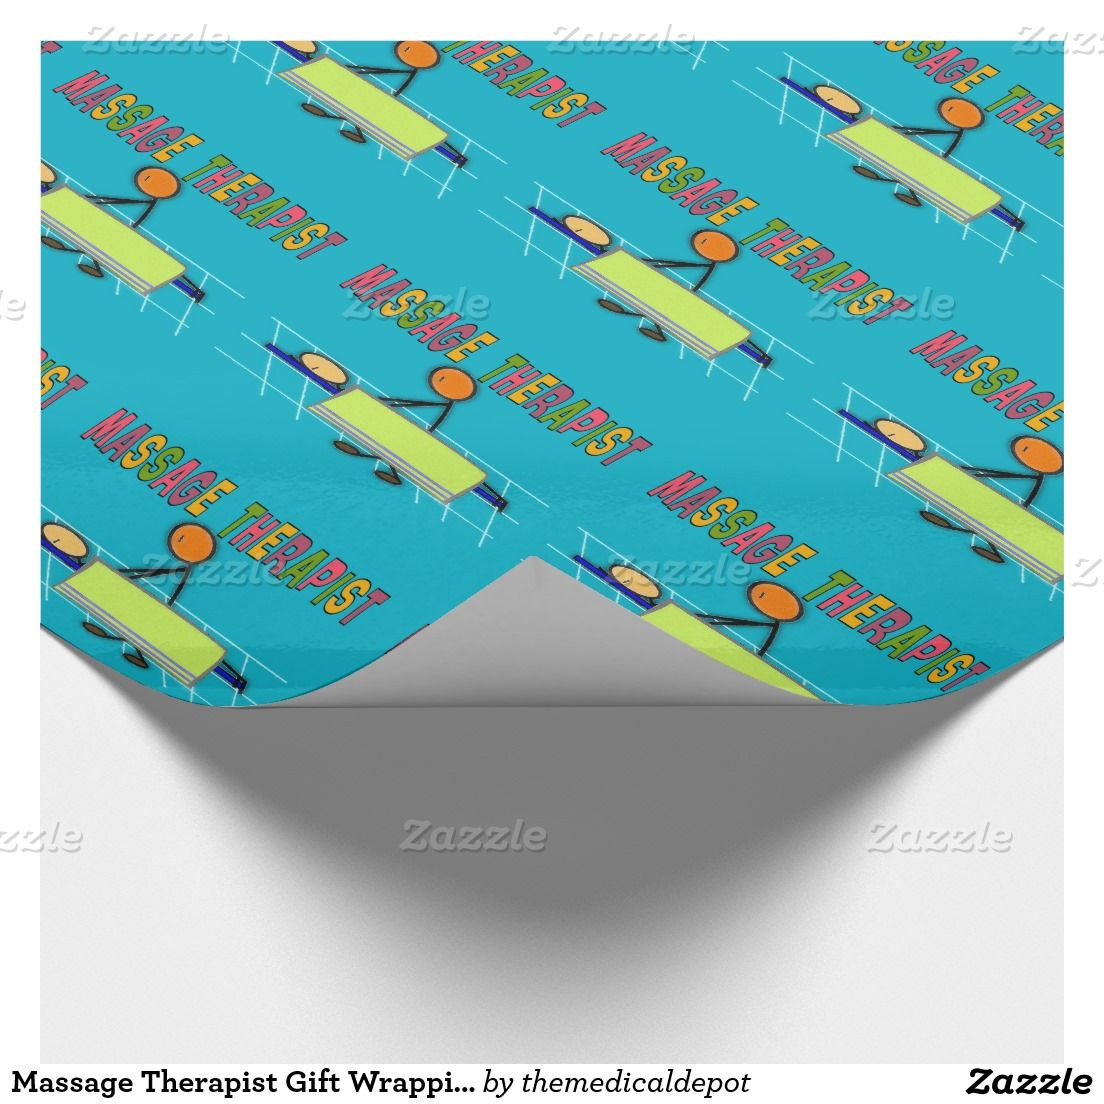 Massage Therapist Gift Wrapping Paper